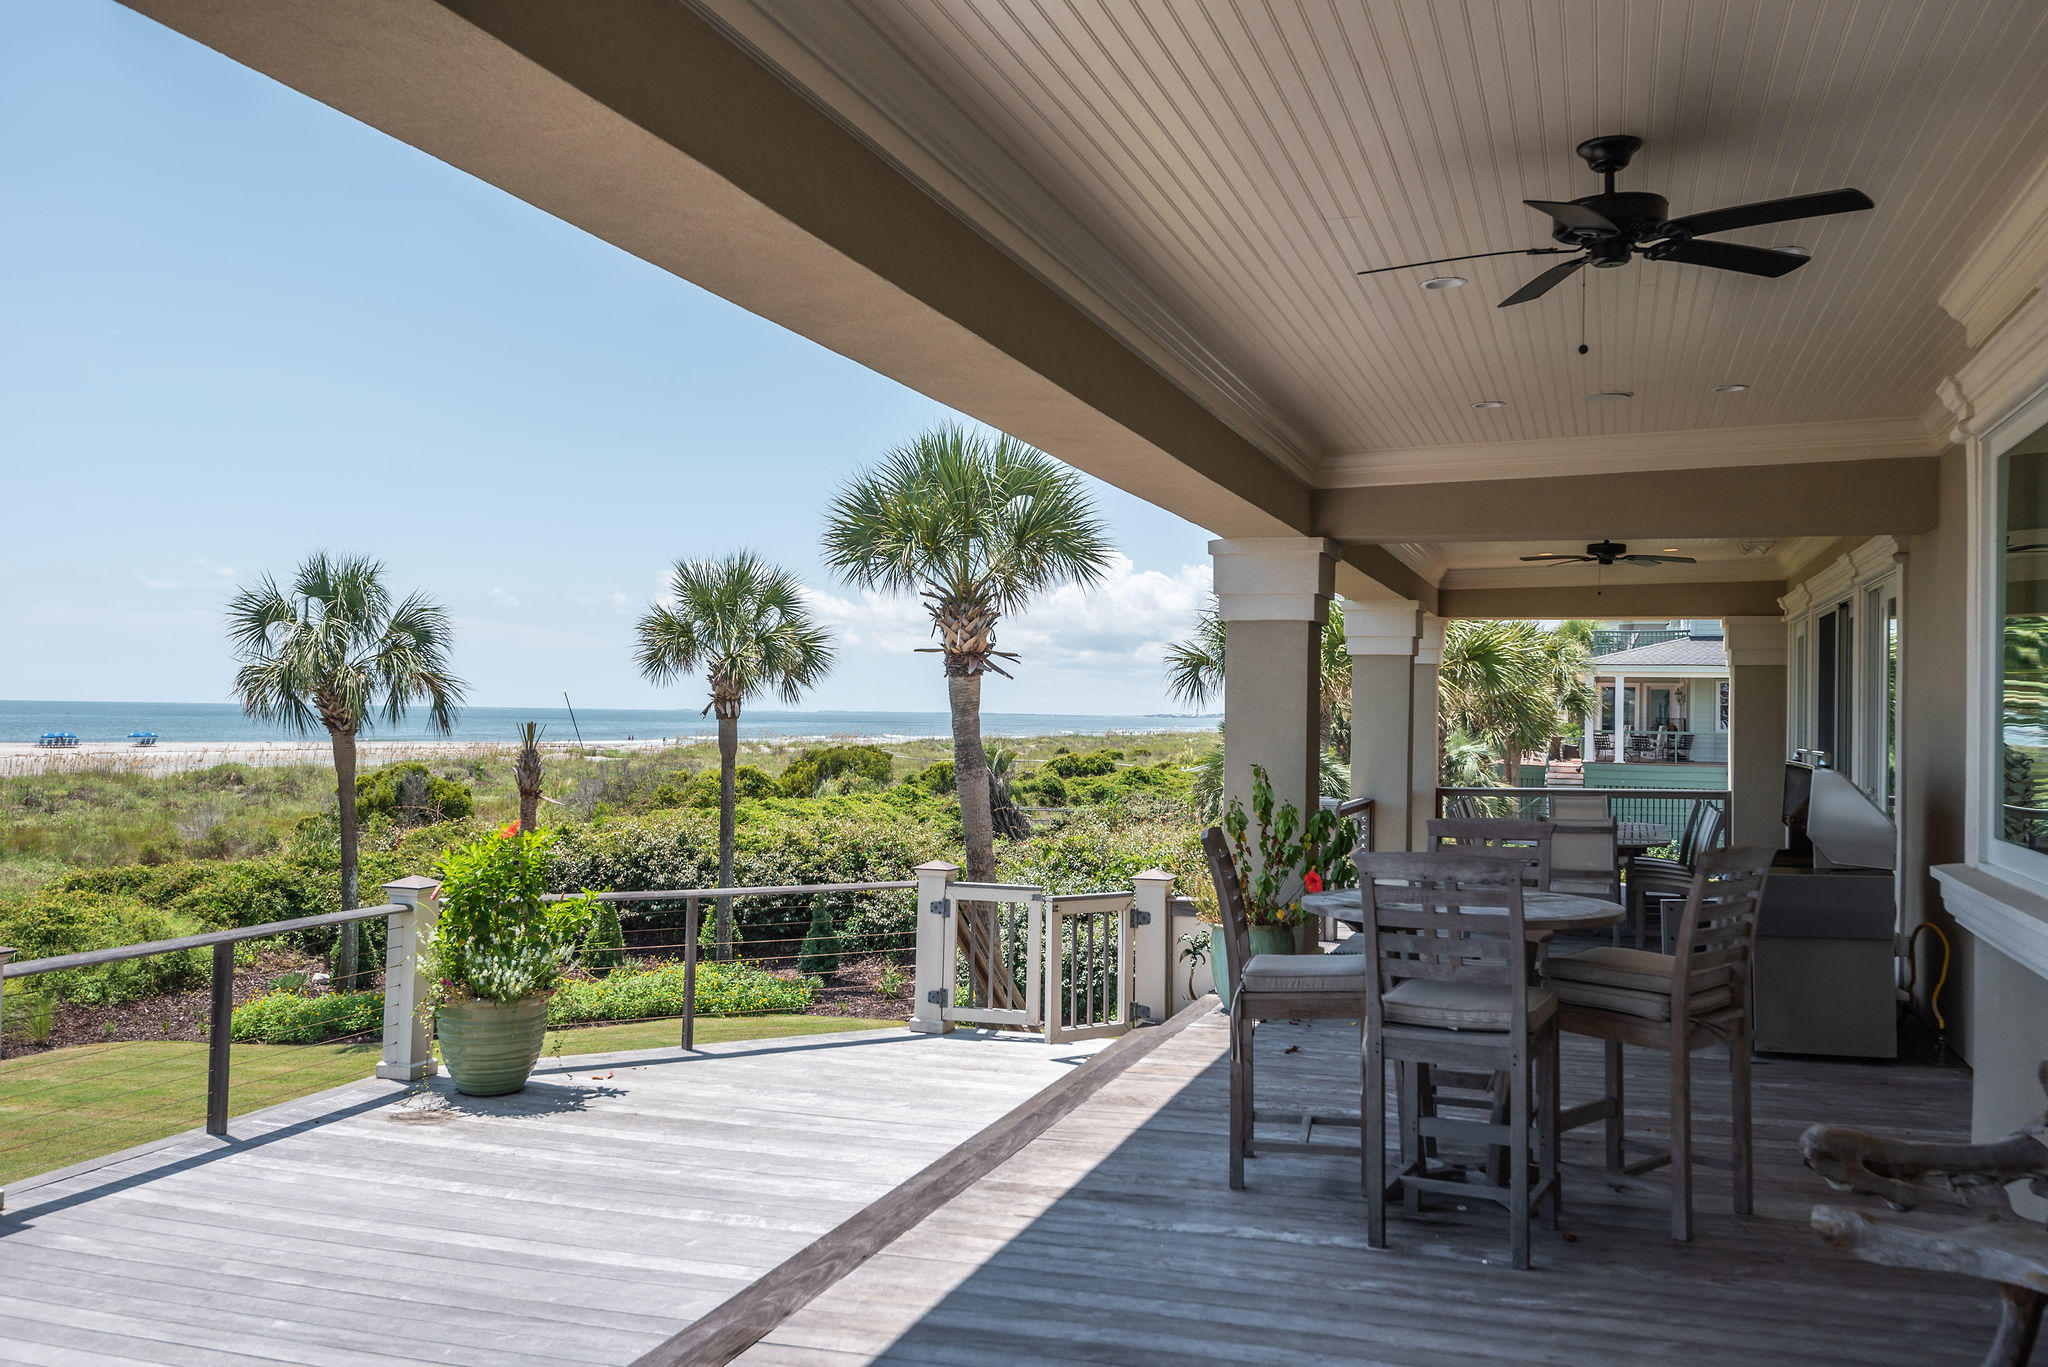 Isle of Palms Homes For Sale - 2 50th, Isle of Palms, SC - 53